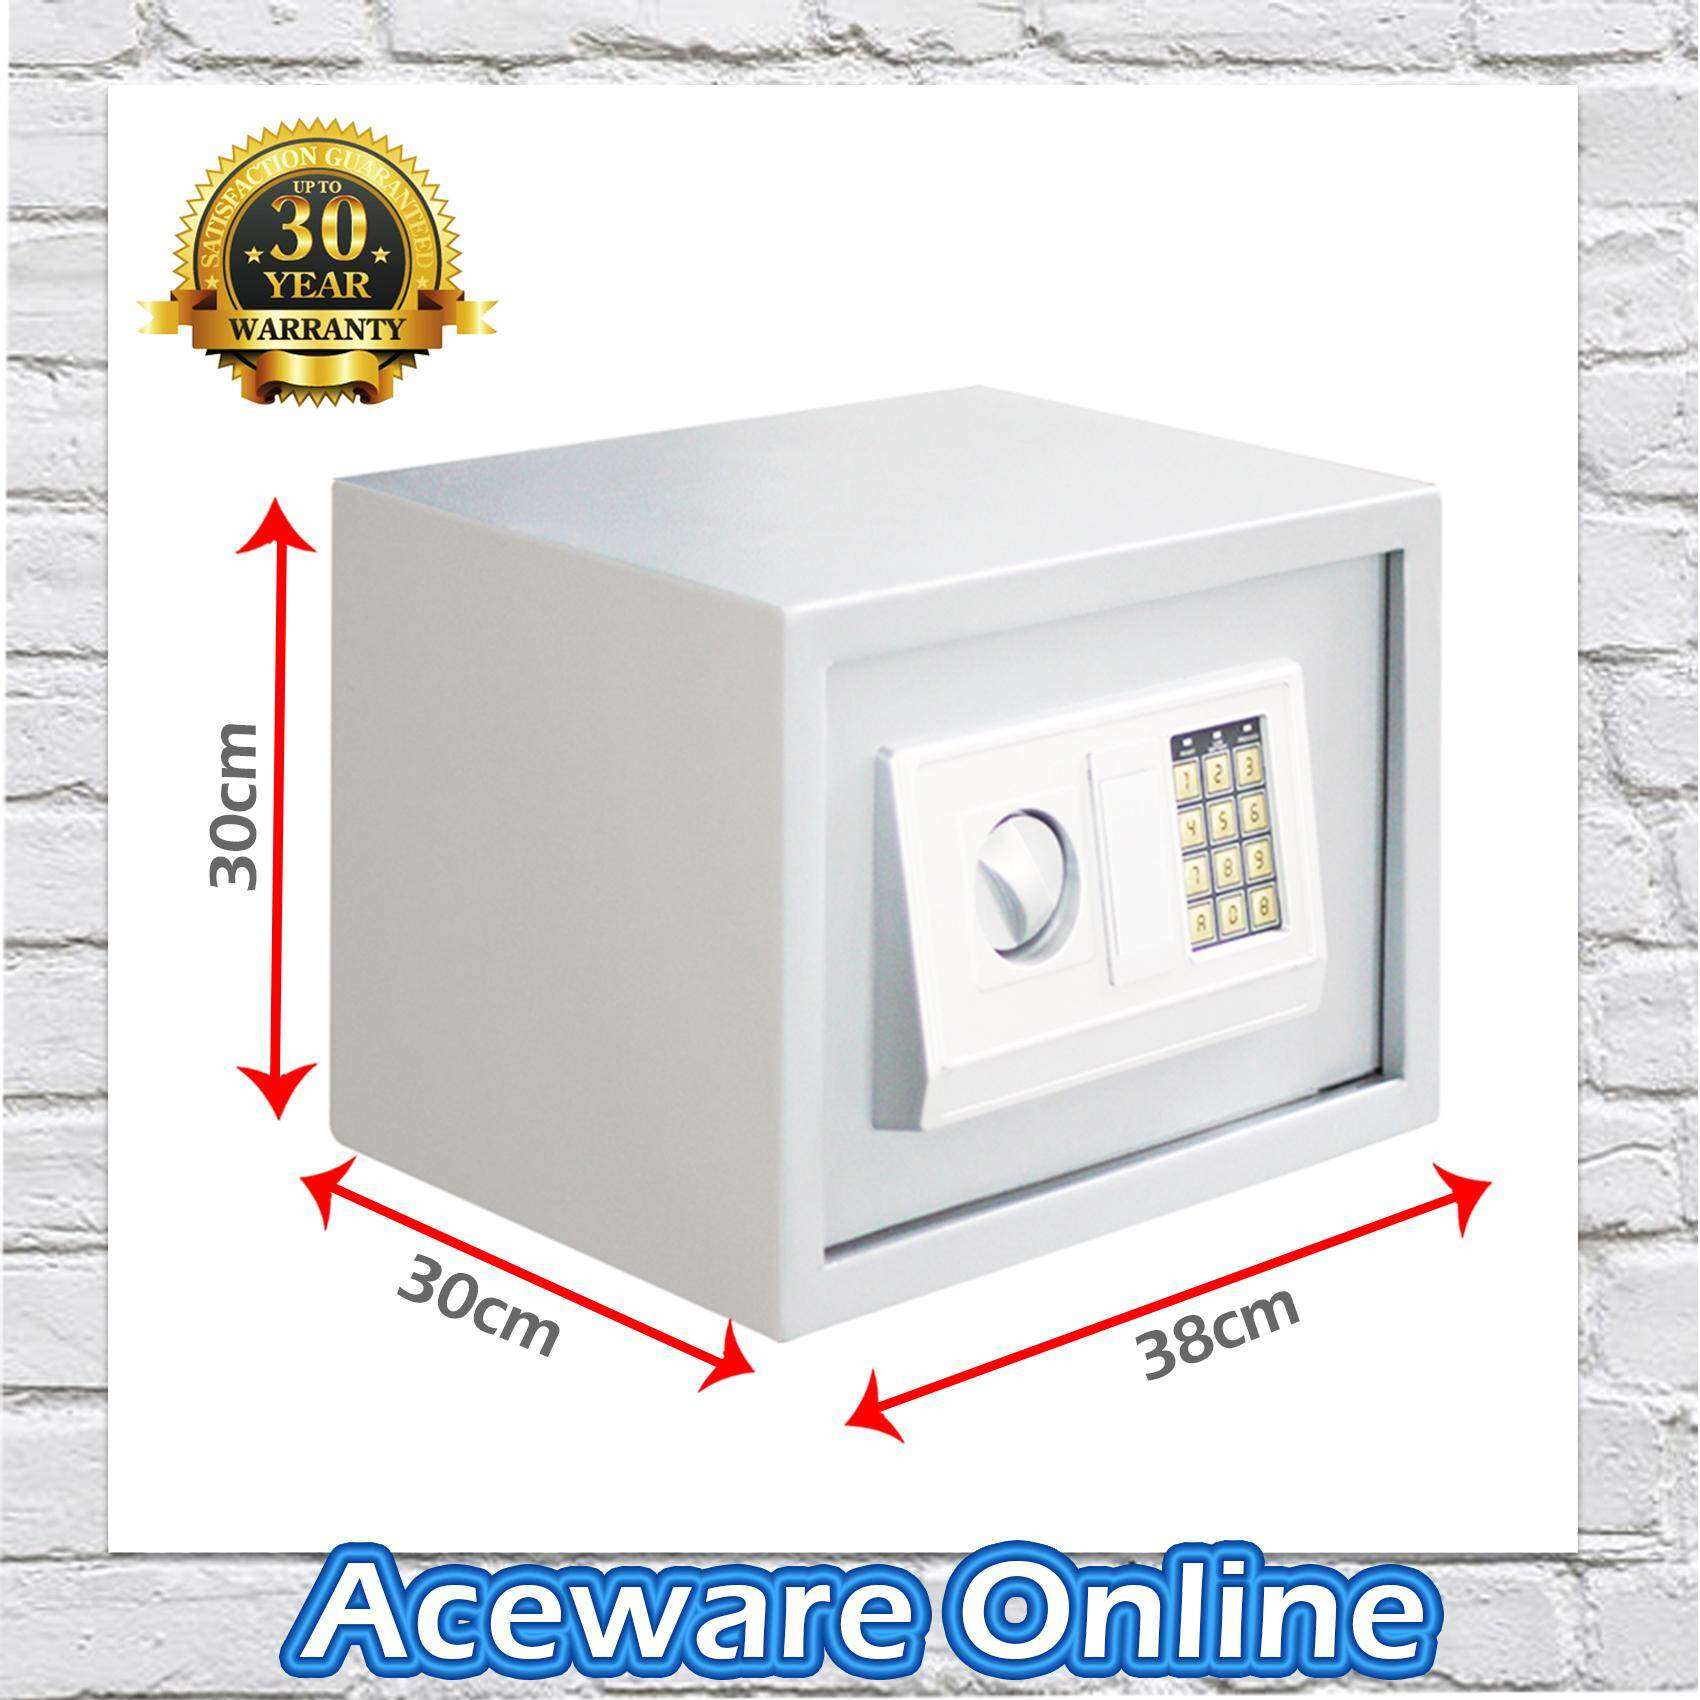 8.5KG Large 38cm Fit A4 Size Safety Box Safe Box Burglary Safe Box Anti-Theft Box (White)